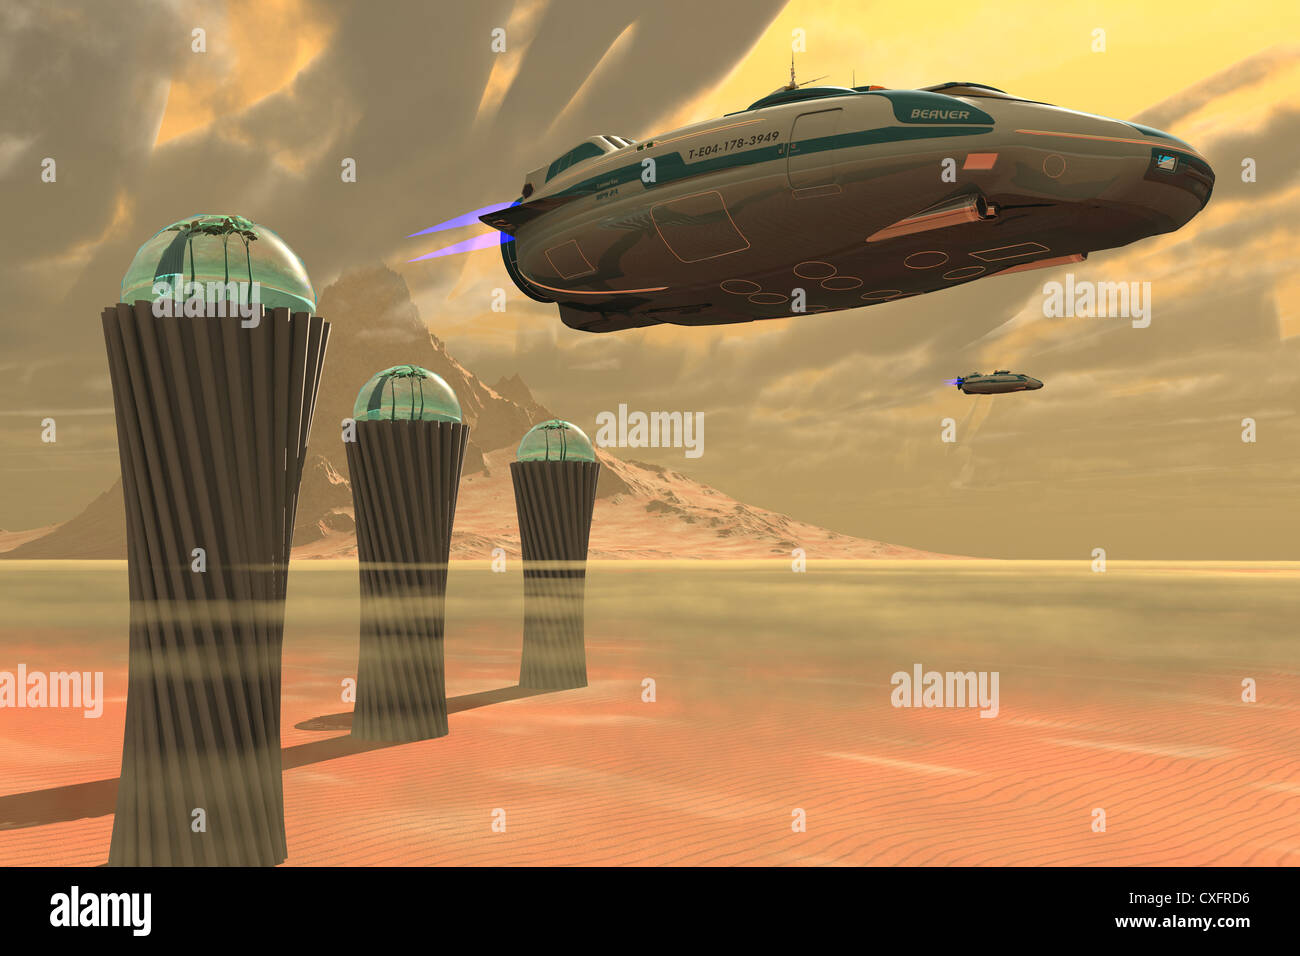 Two spacecraft takeoff from a colony which produces vegetation on a desert planet. - Stock Image